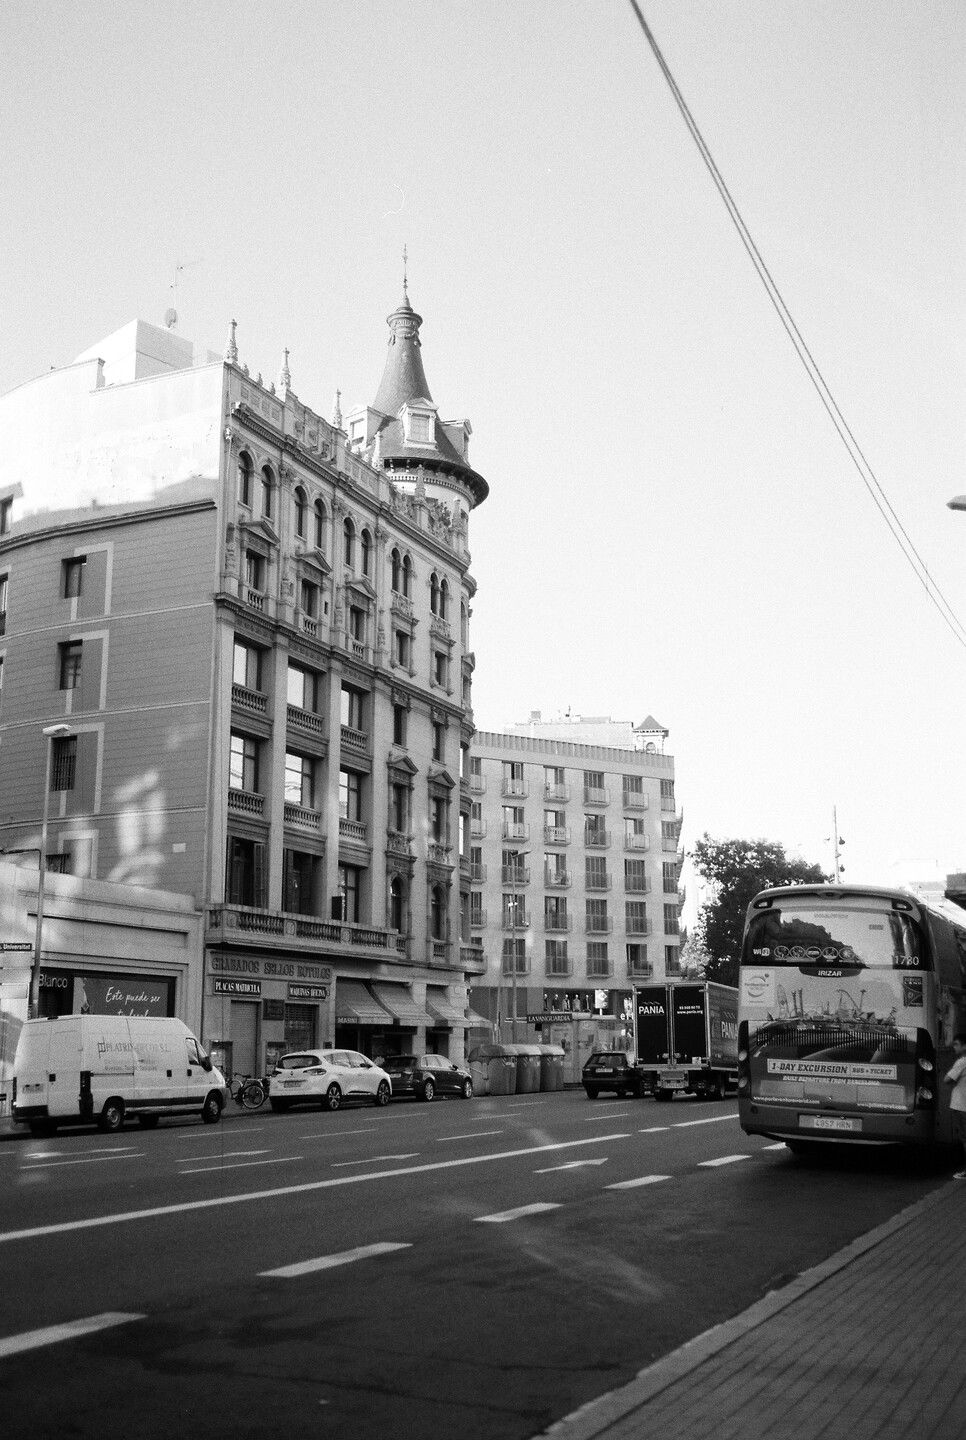 Sep 22, 2019 - Barcelona in Black and White: 9